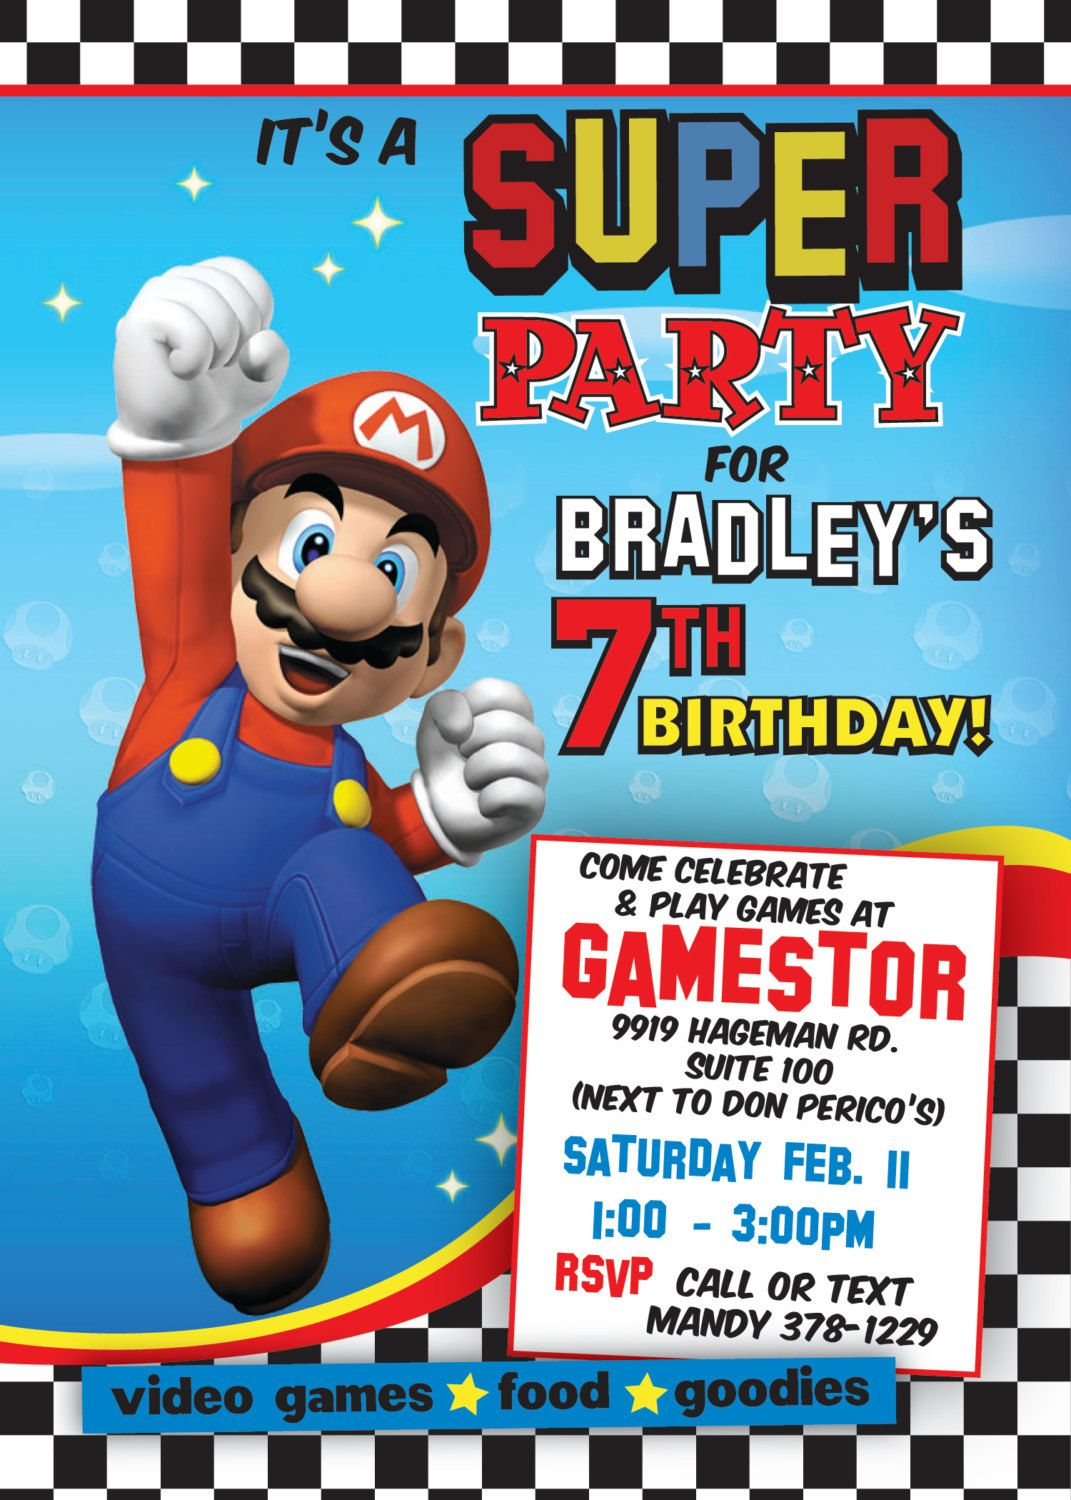 Super mario printable birthday party invitation love this theme super mario printable birthday party invitation love this theme totally doing it monicamarmolfo Gallery